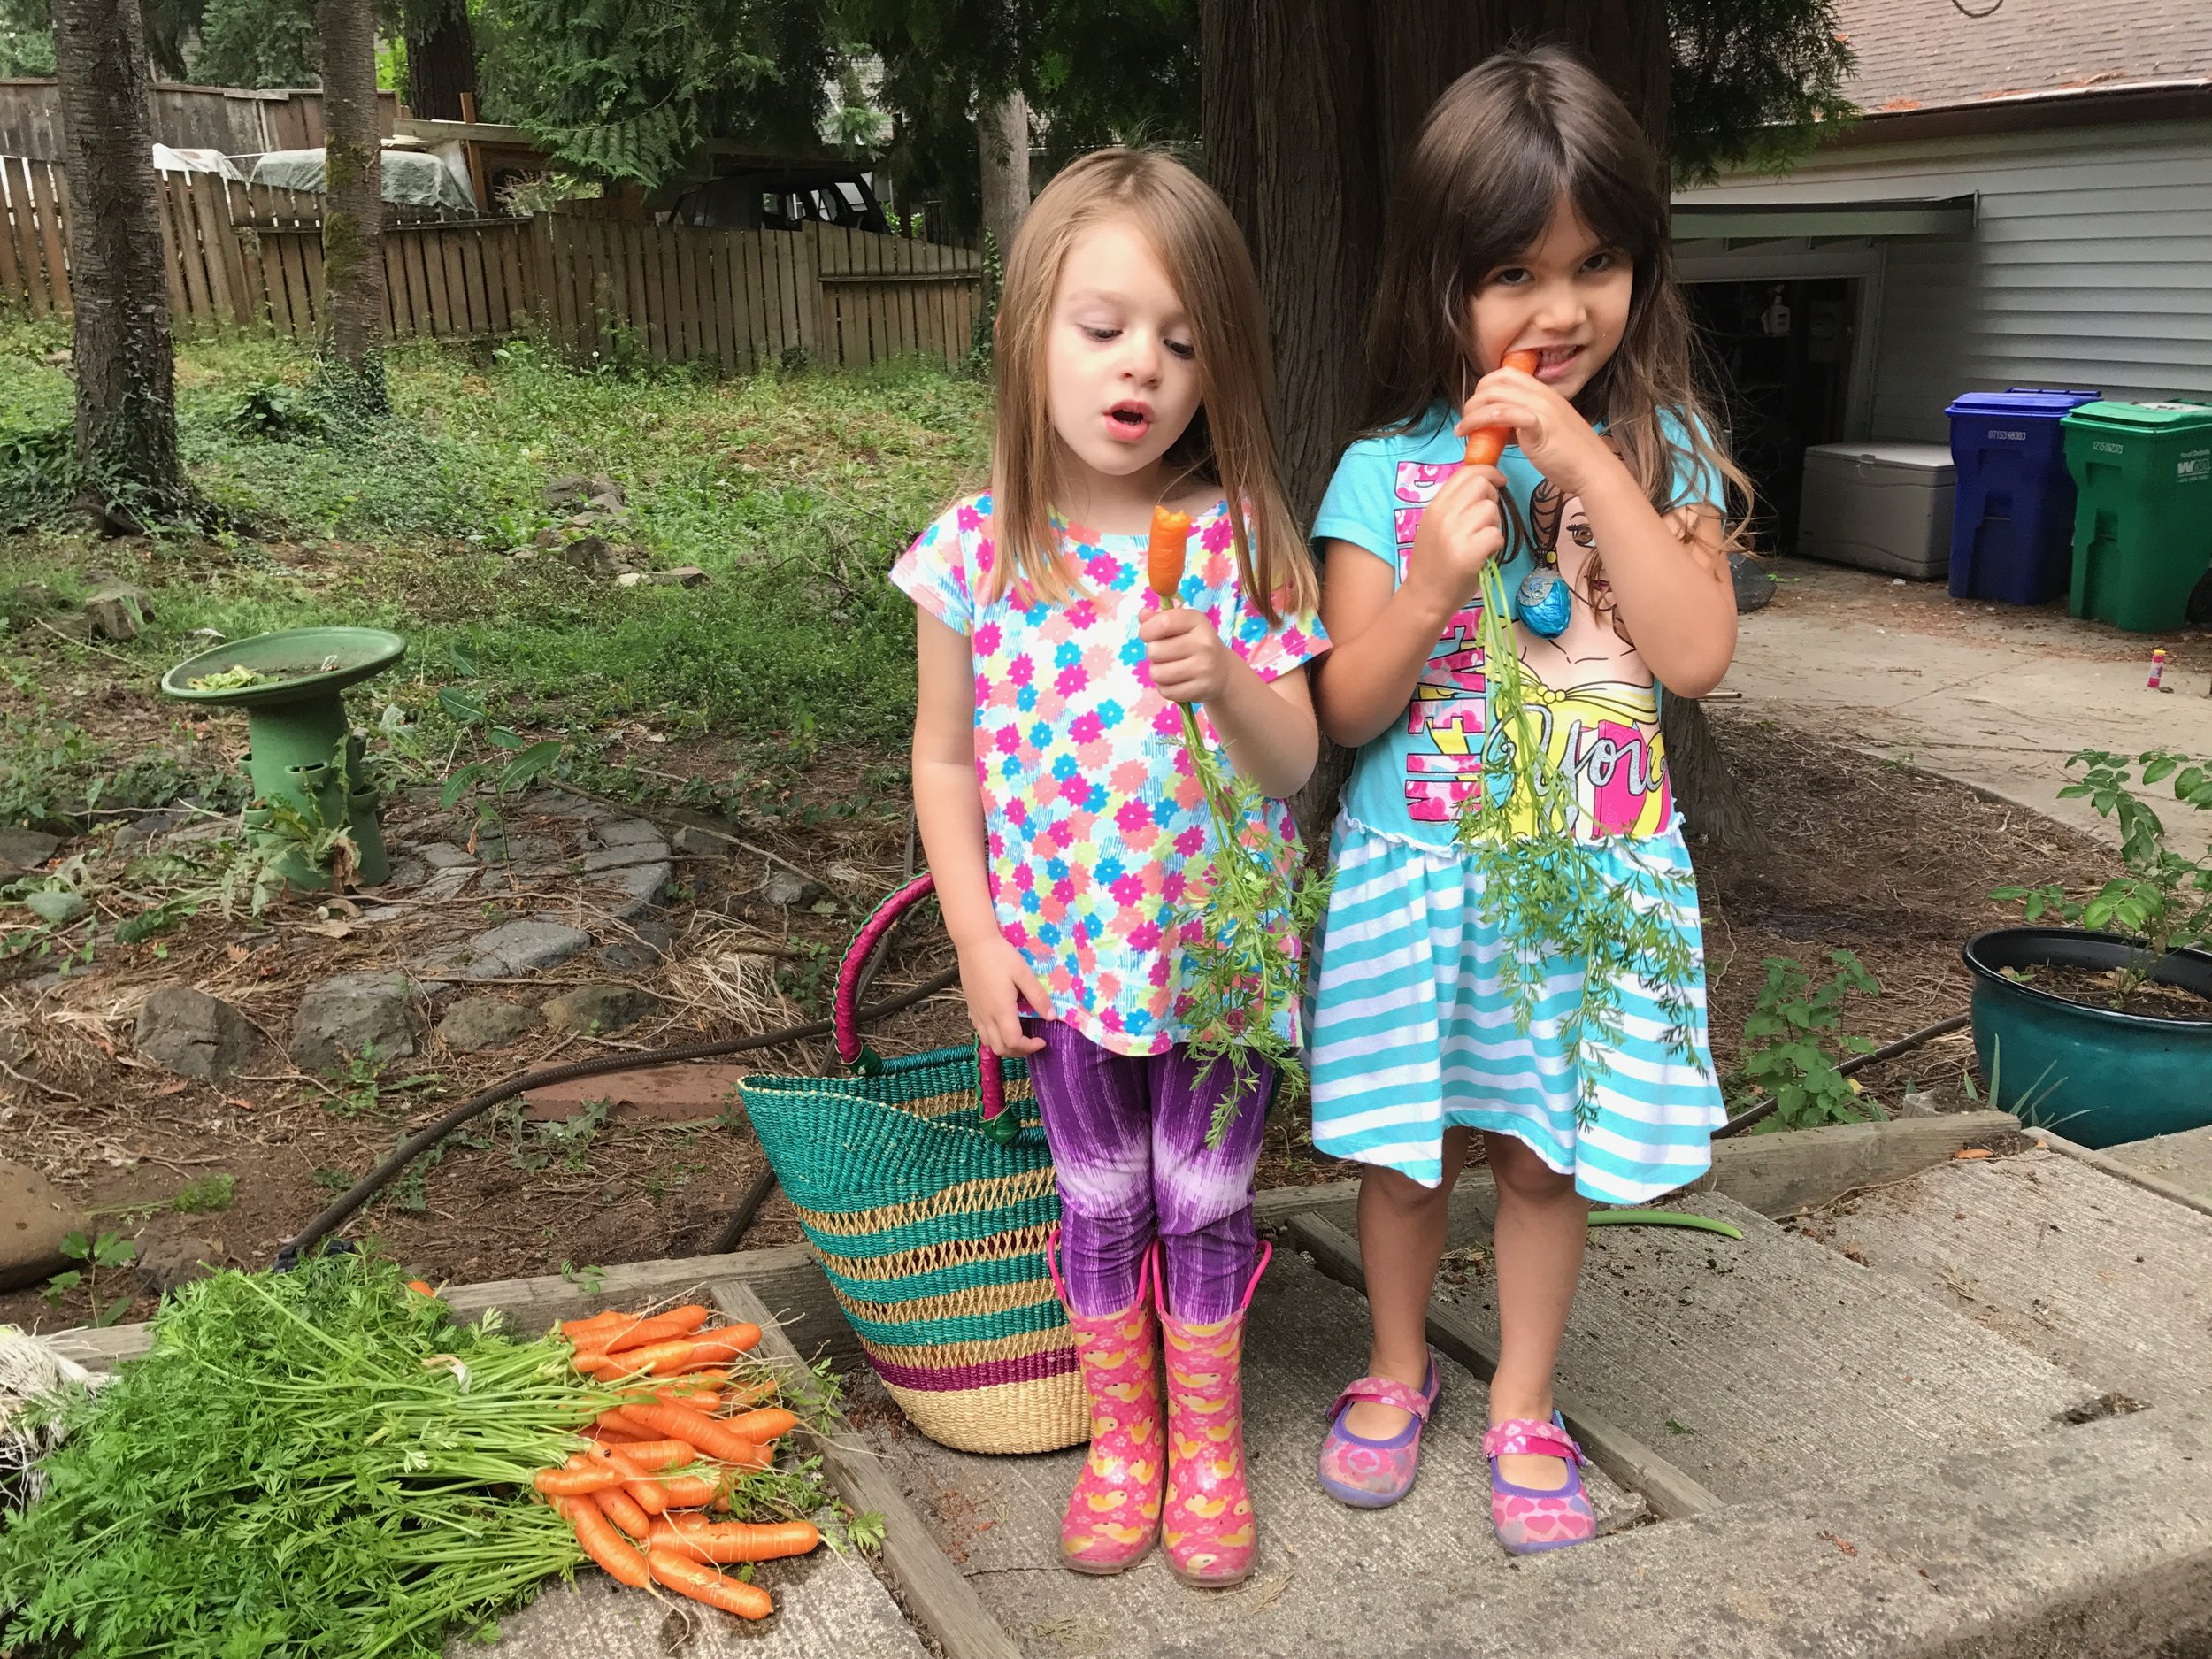 Kids Eating Carrots in the Vegetable Garden